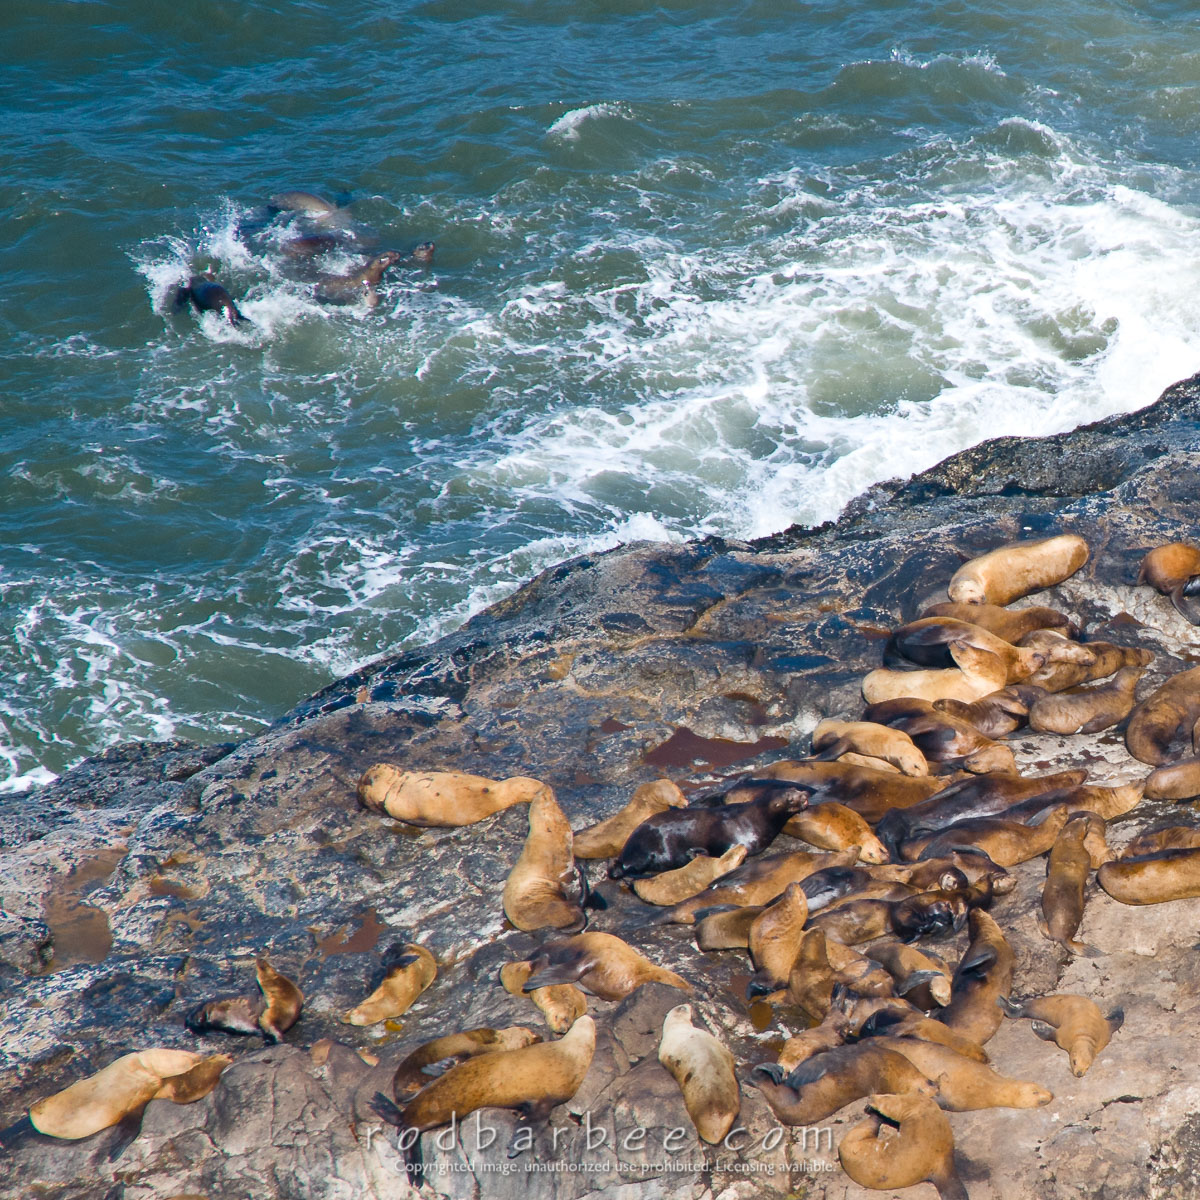 Barbee_110801_3_8073 |  Sea Lions on the rocks at Sea Lion Caves